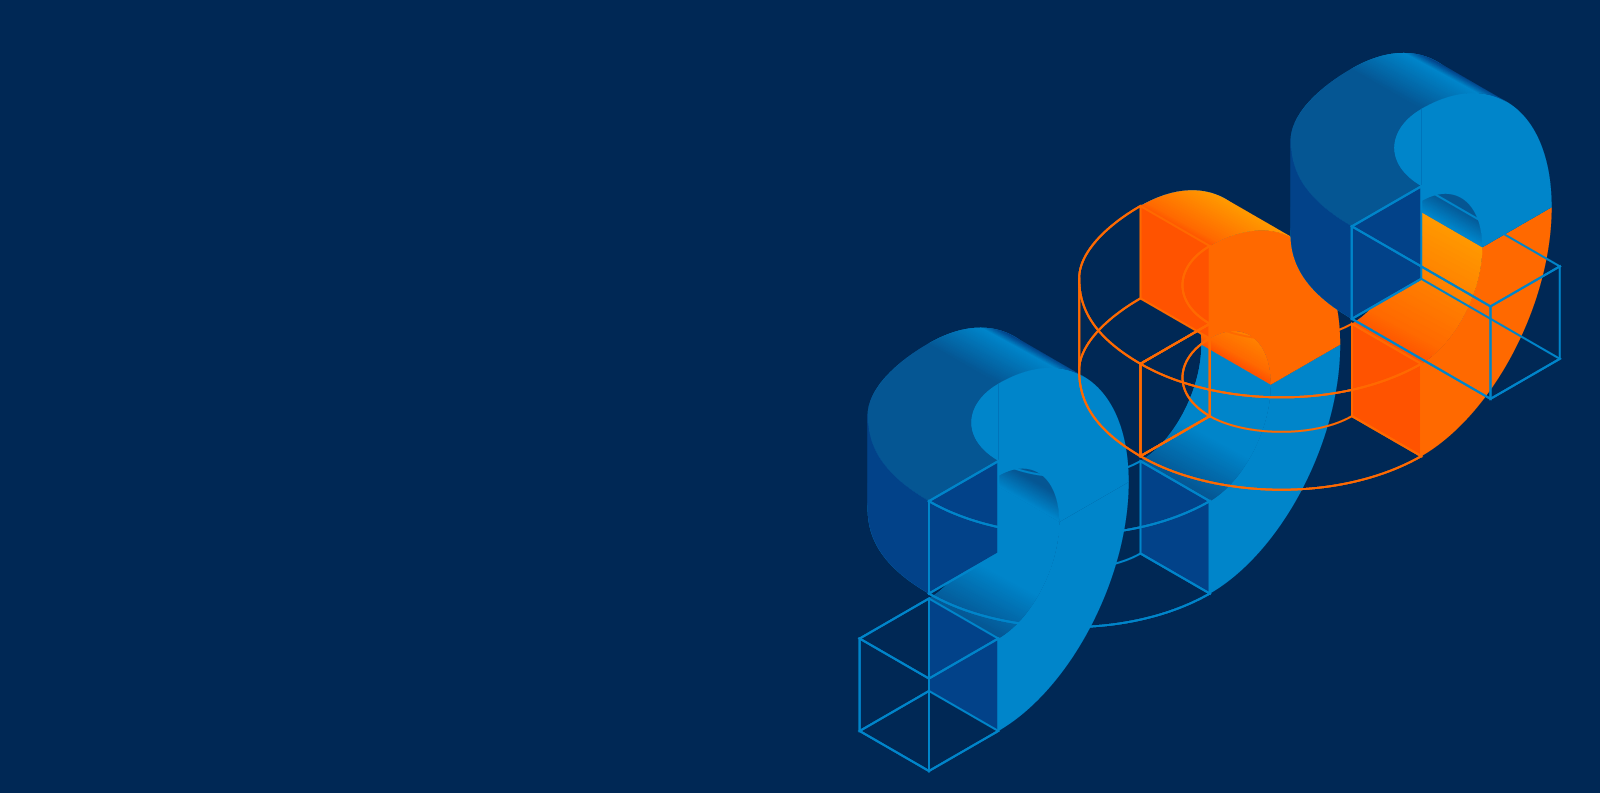 2019 lts release uipath